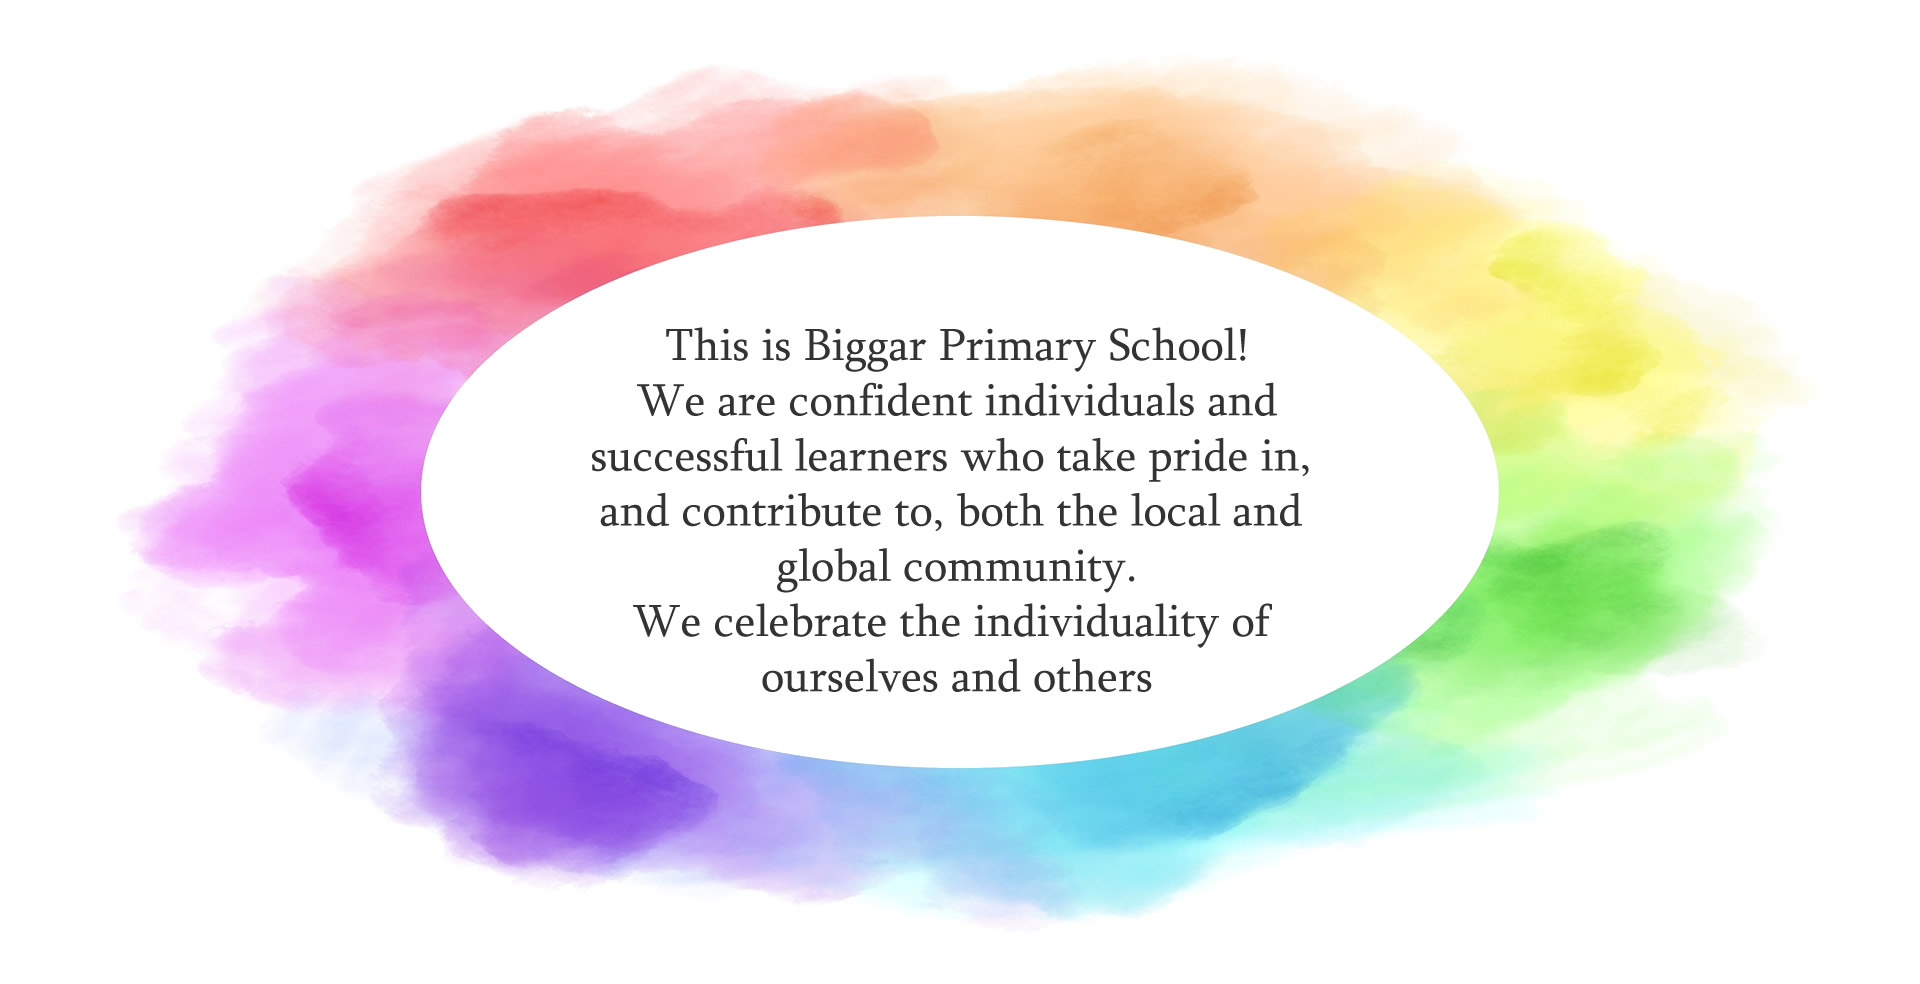 Biggar Primary School Our Vision